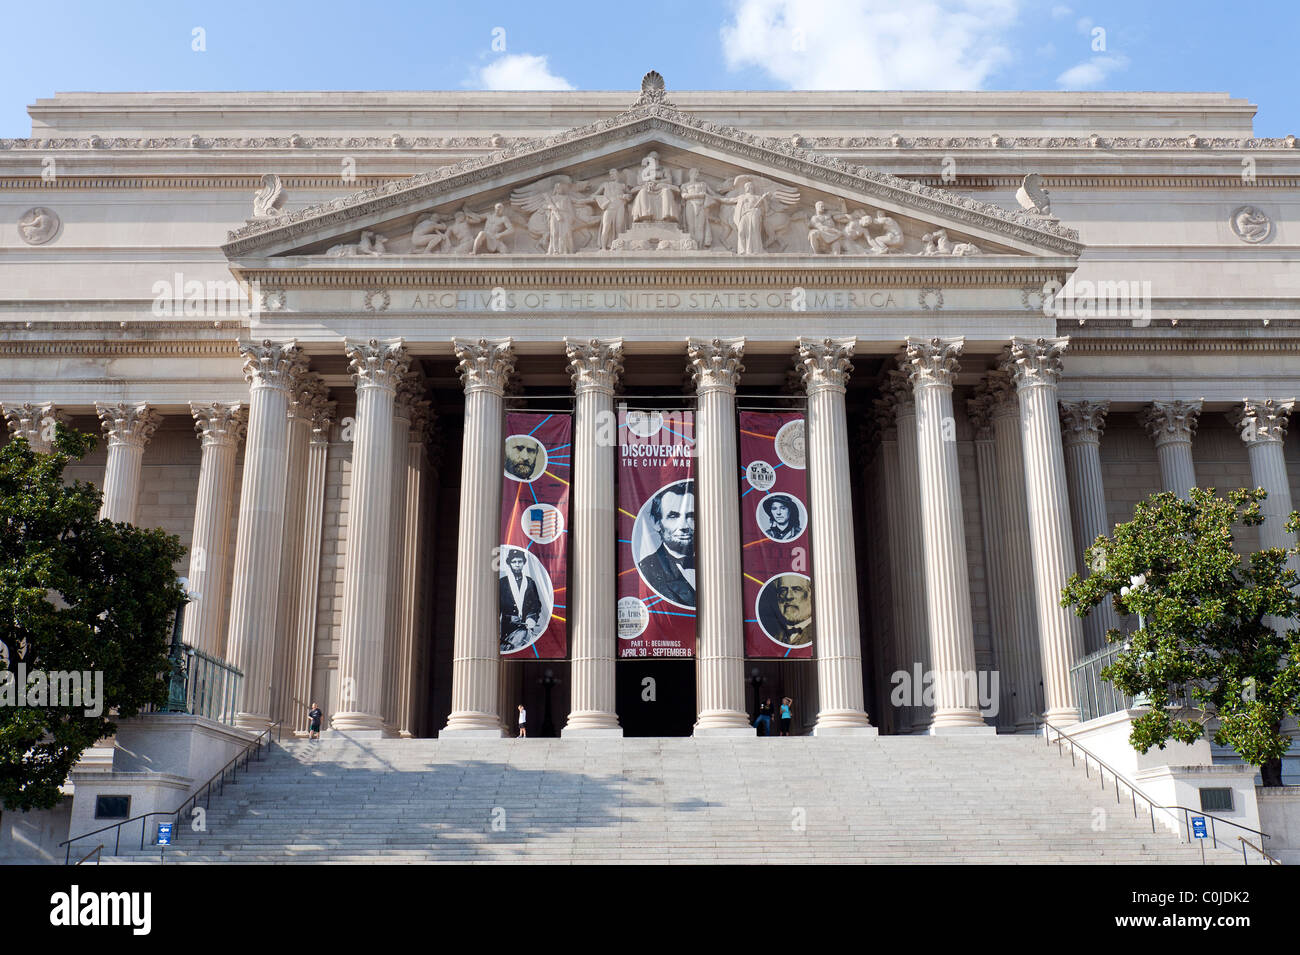 The National Archives of the United States of America. - Stock Image